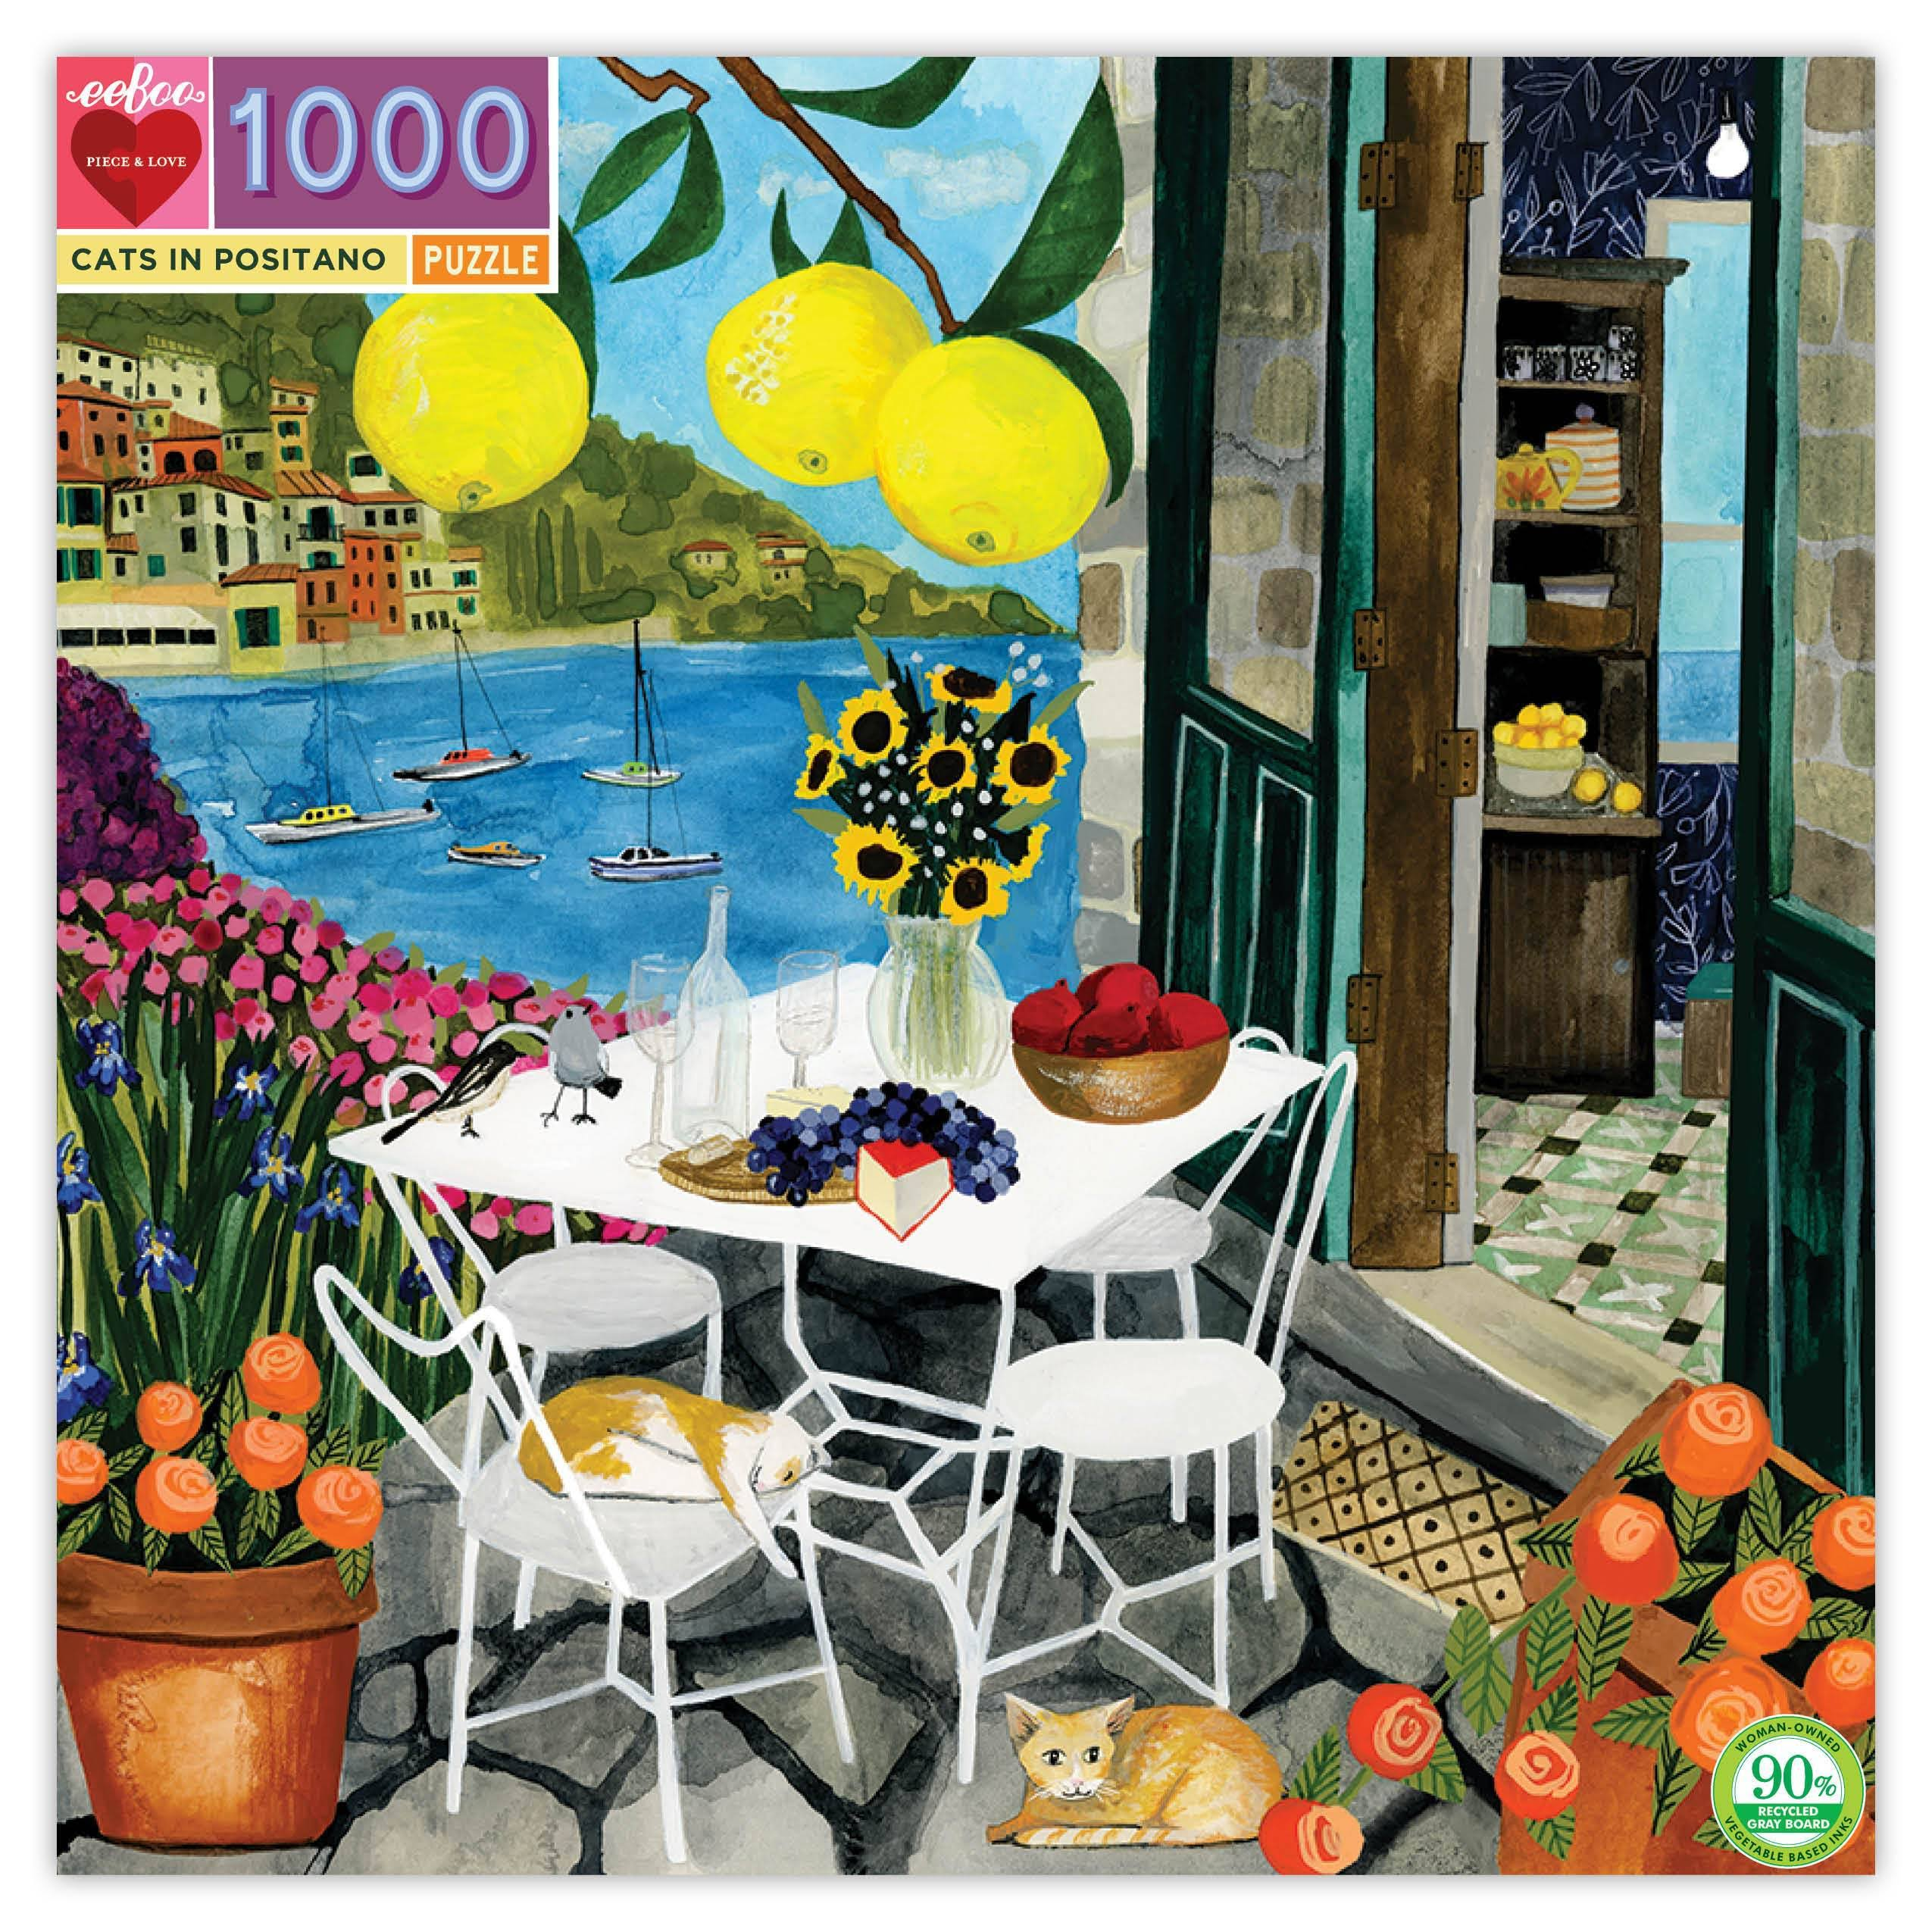 eeBoo Cats in Positano 1000 PC Puzzle